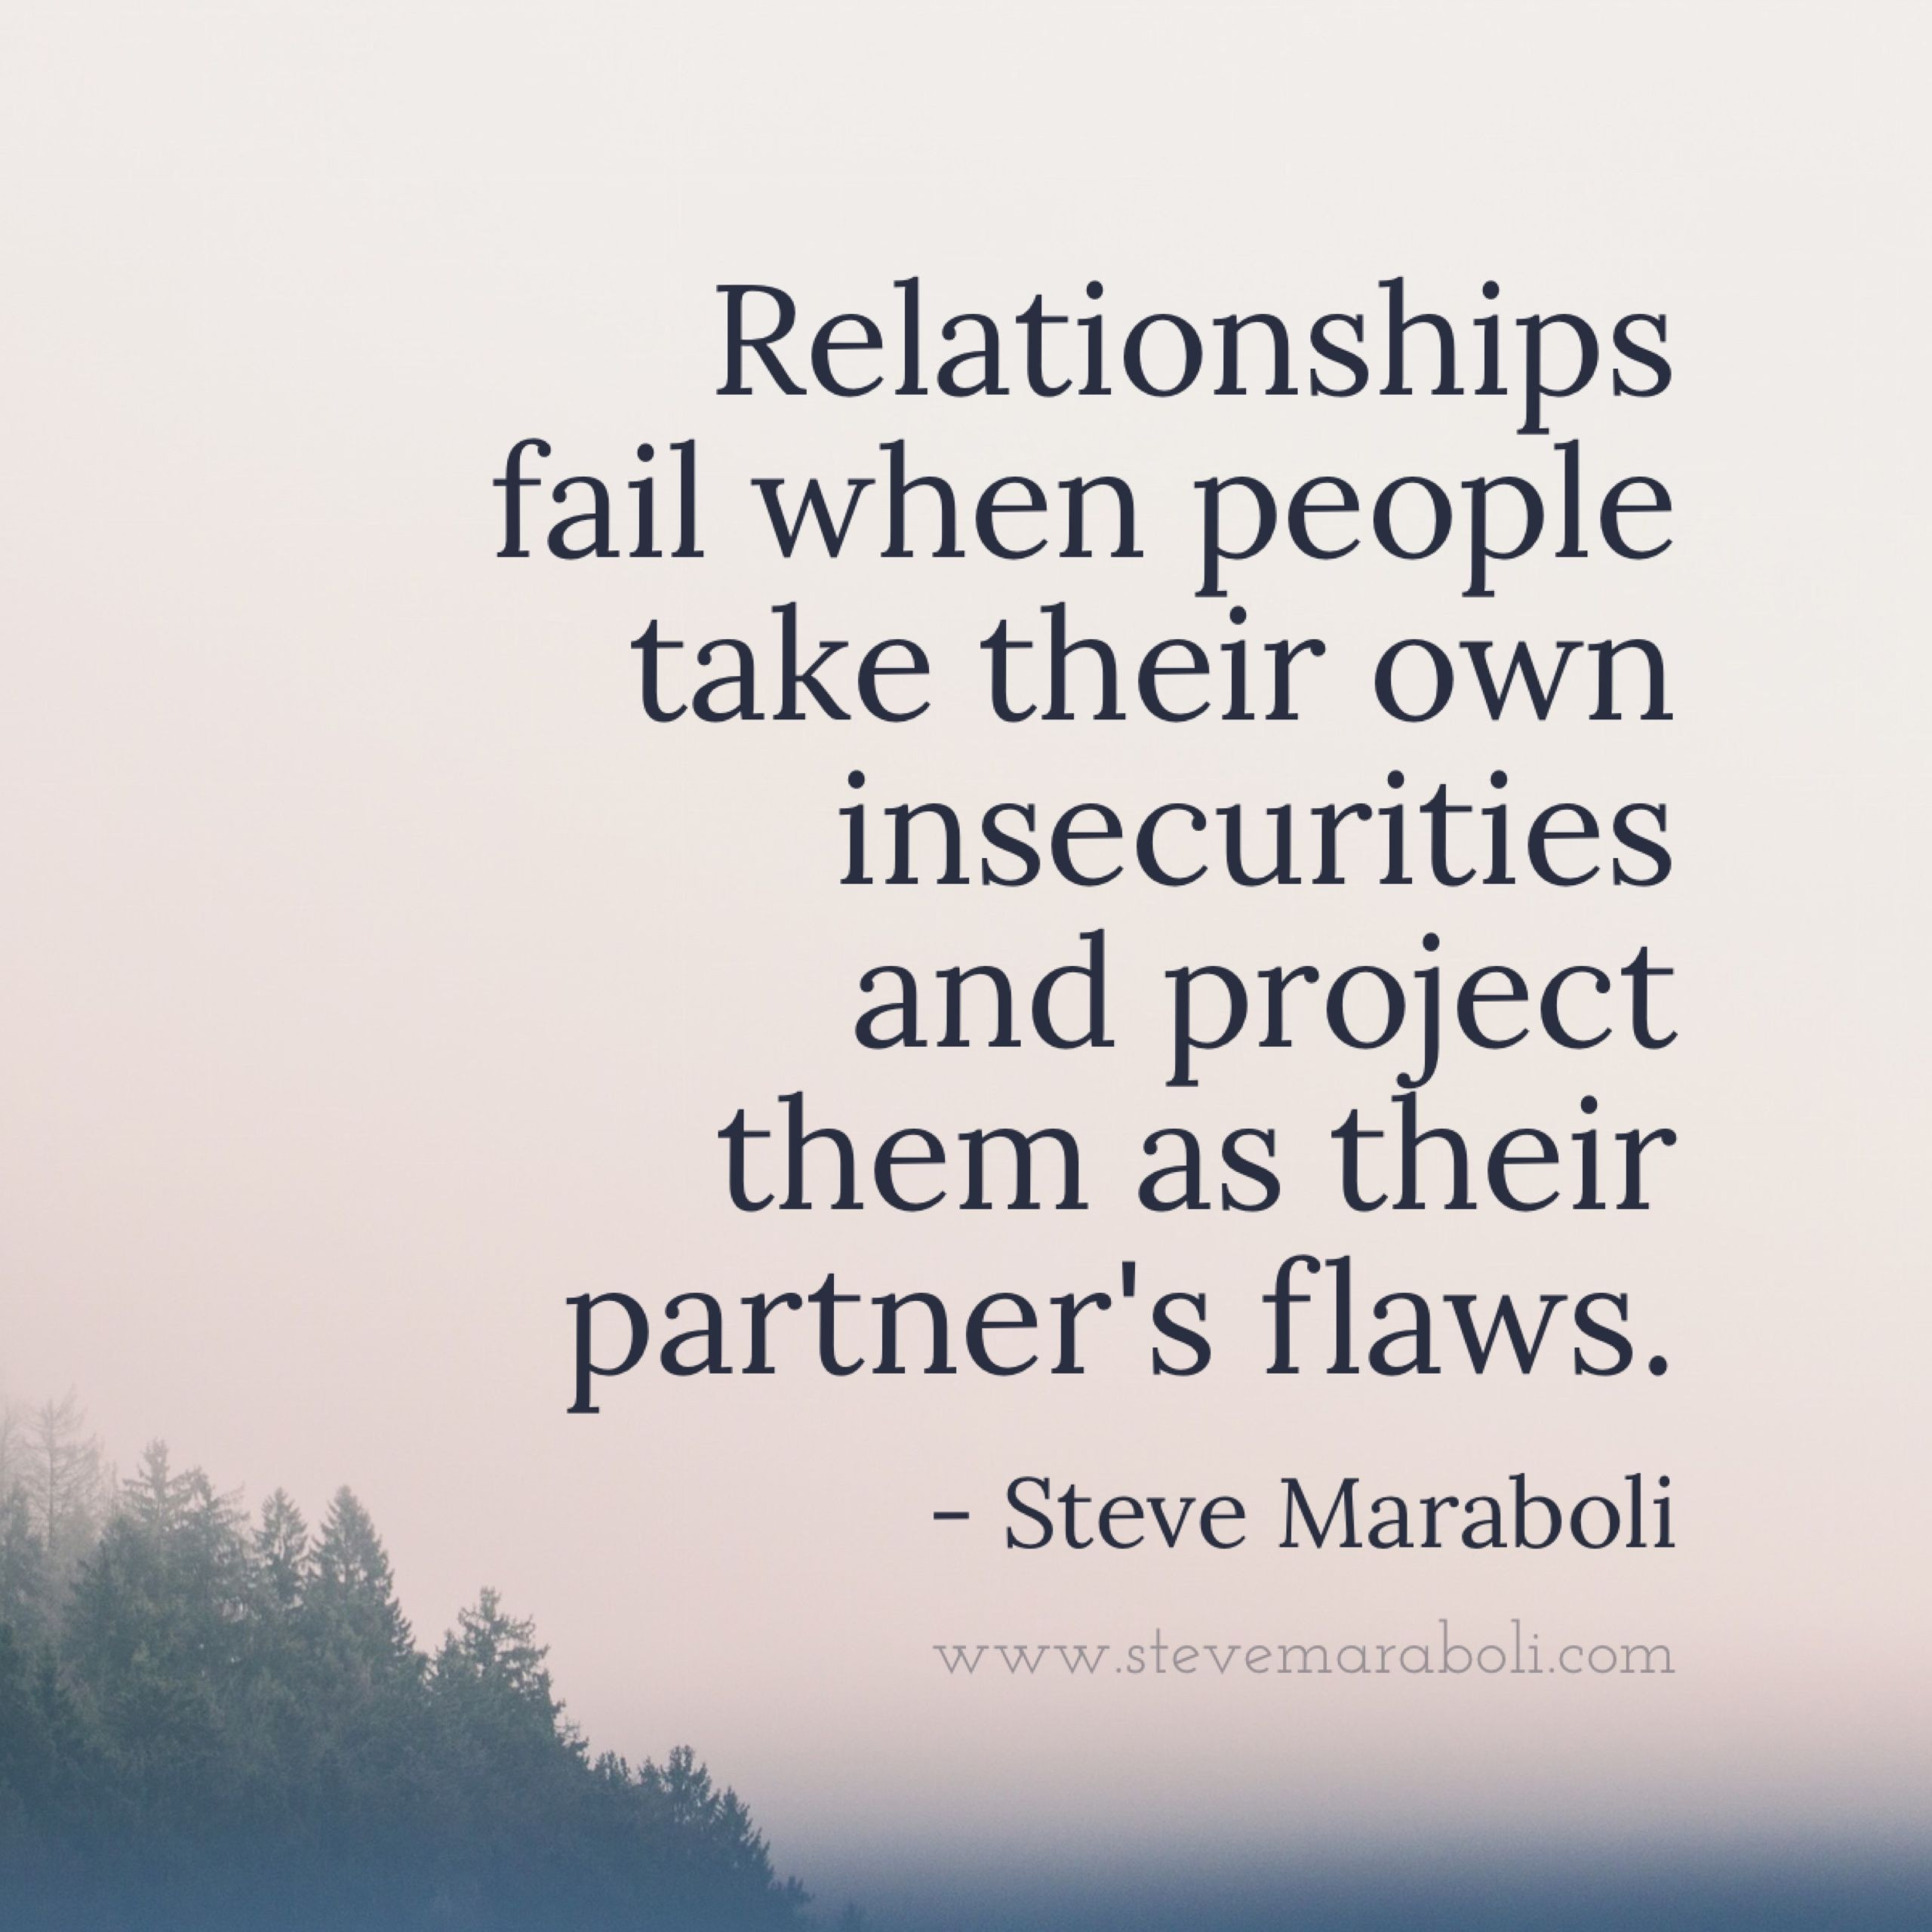 Quotes About Failing Marriages  Relationships fail when people take their own insecurities